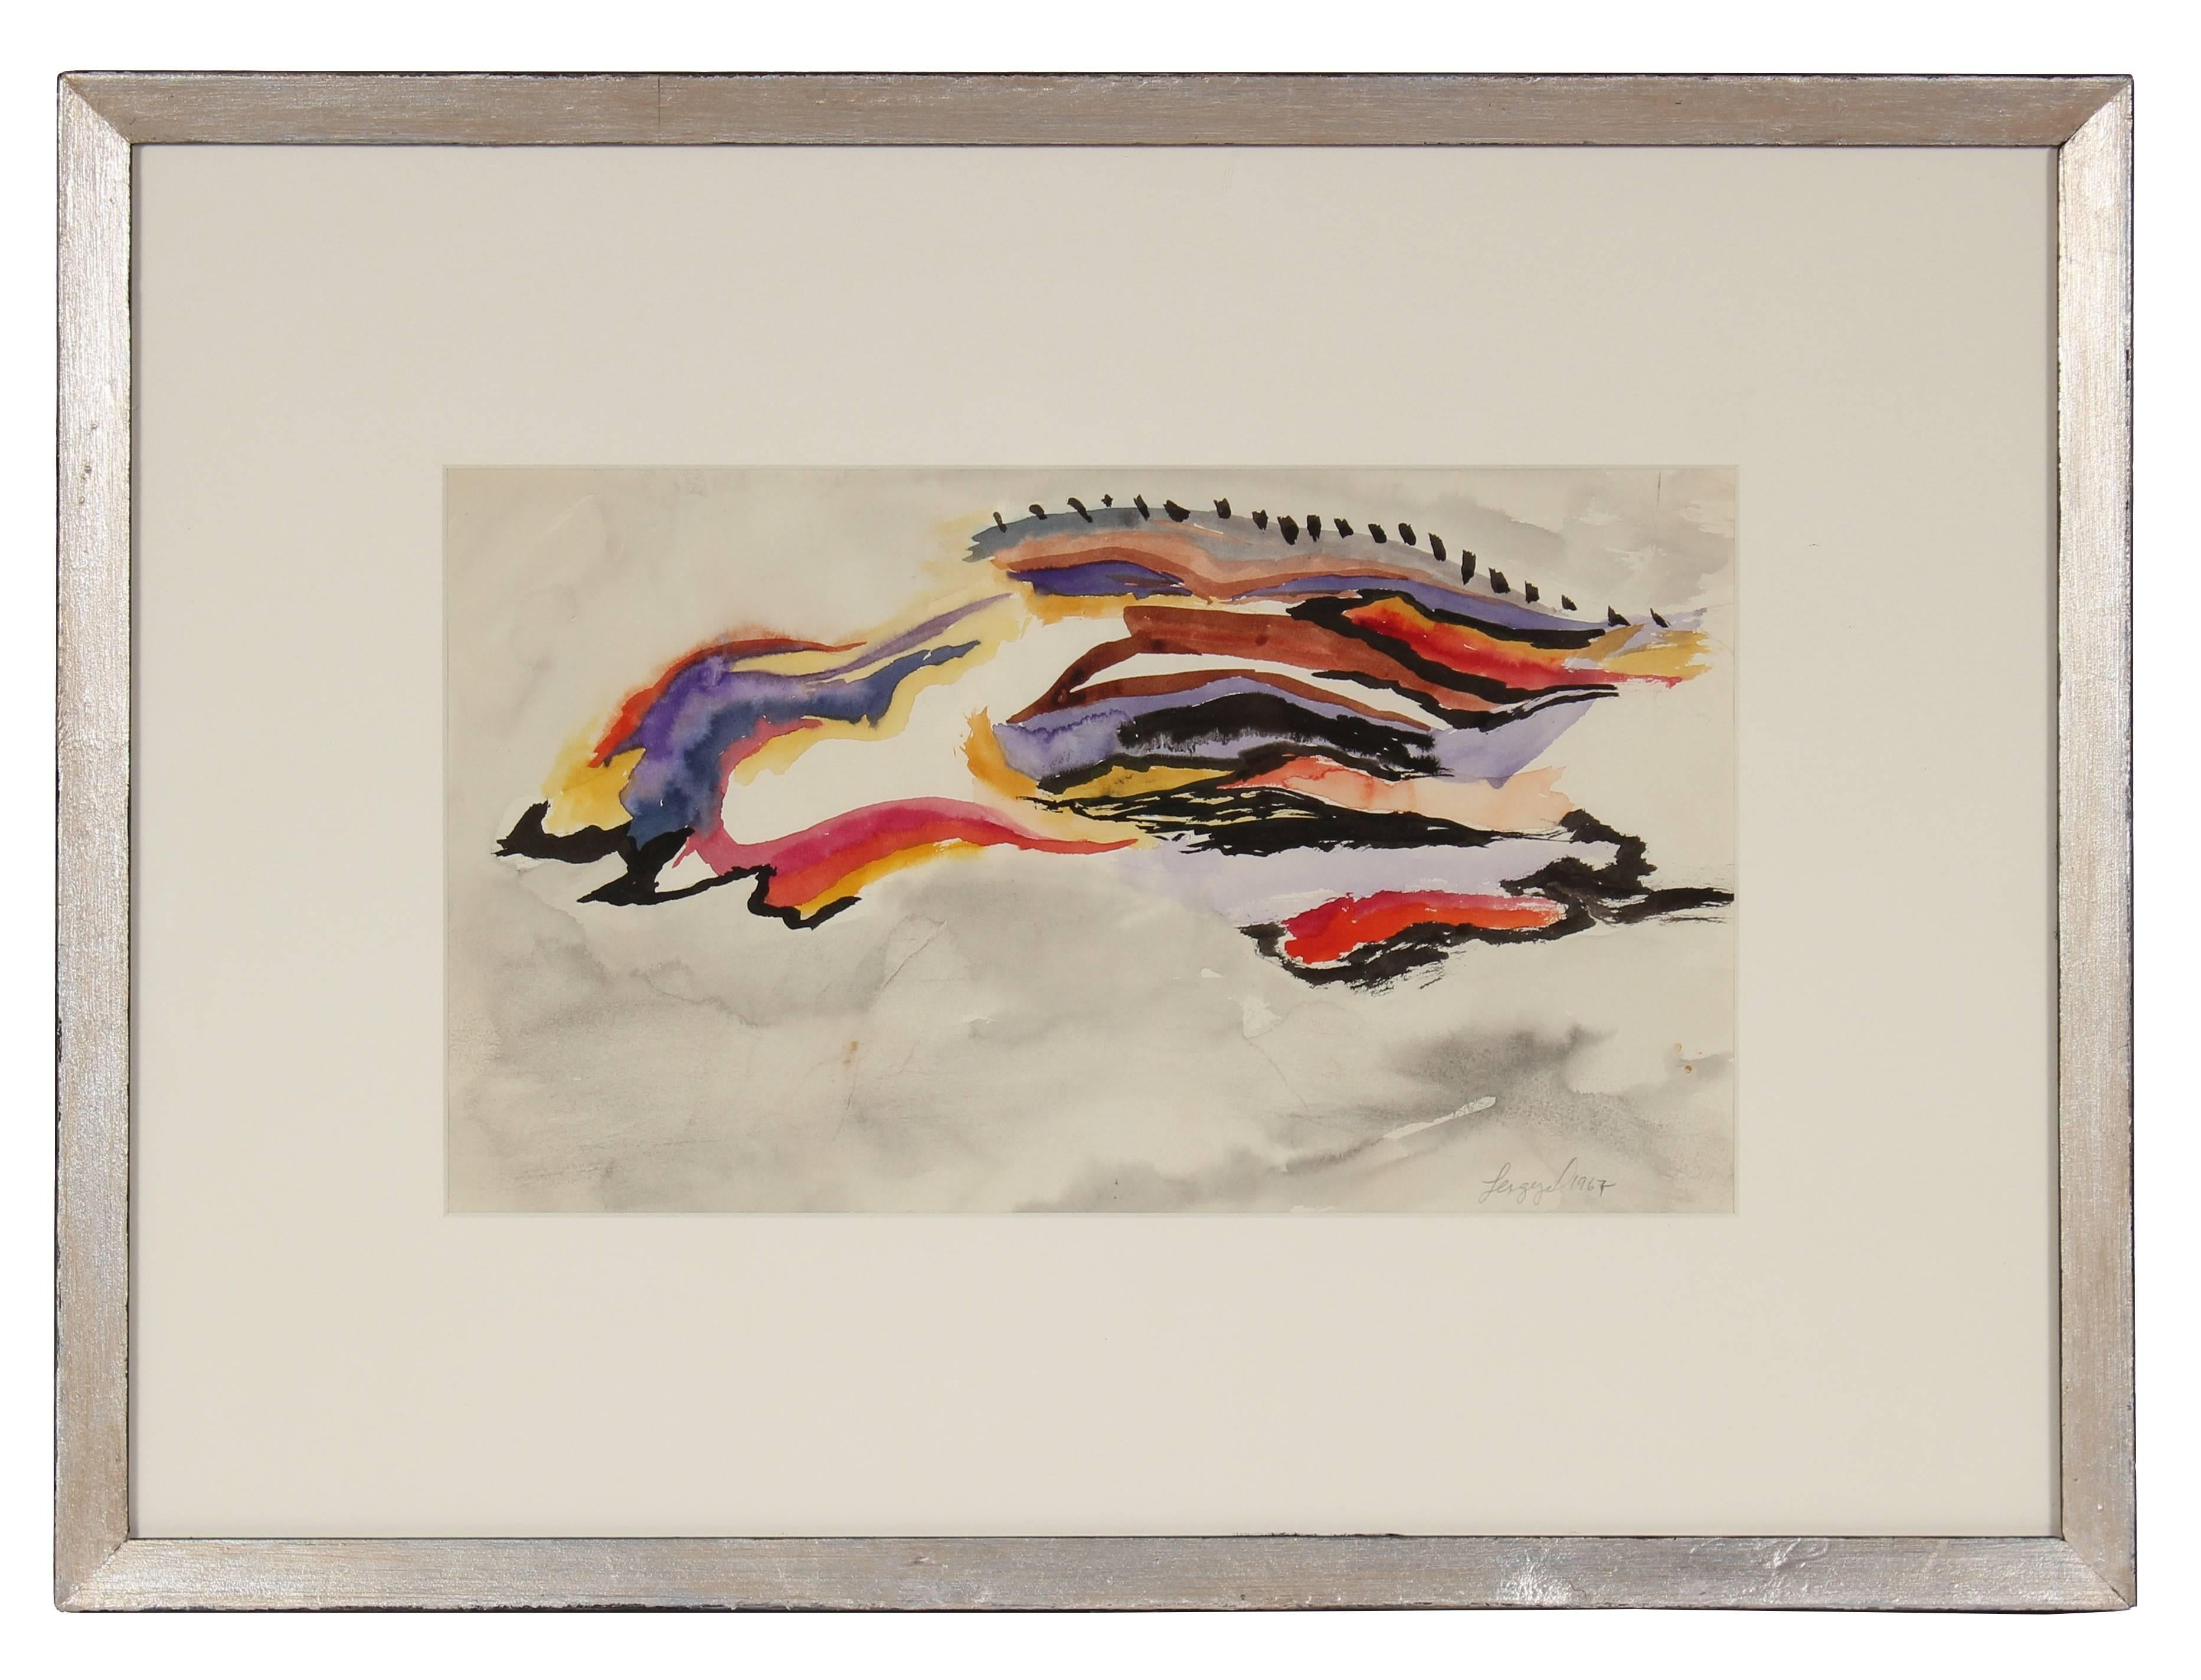 Colorful Gouache Abstracted Modernist Landscape in Metallic Frame